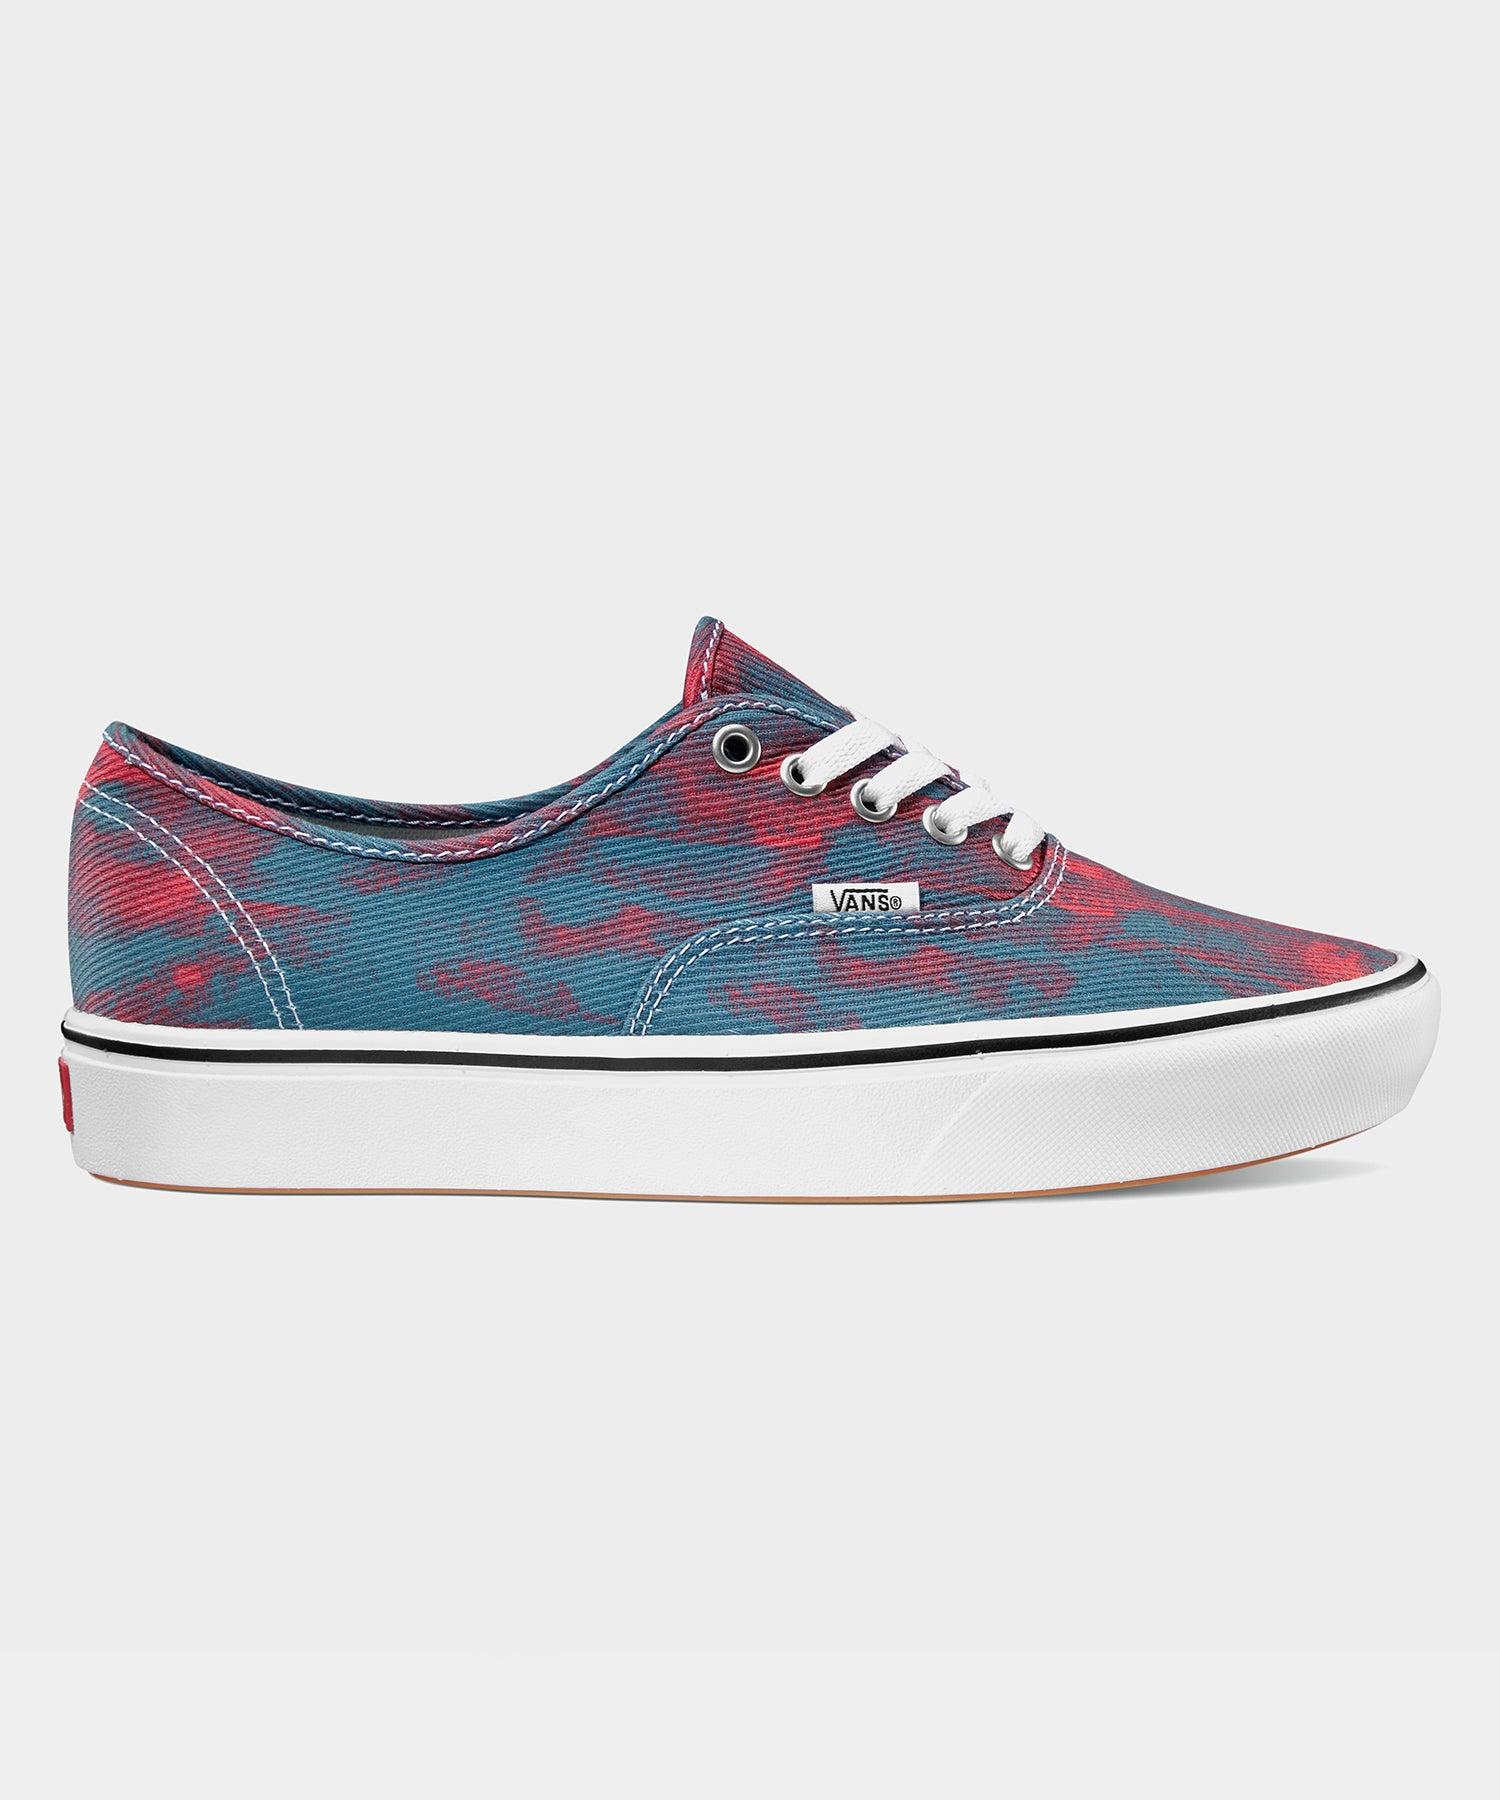 VANS COMFYCUSH AUTHENTIC IN BLUE/RED TIE-DYE